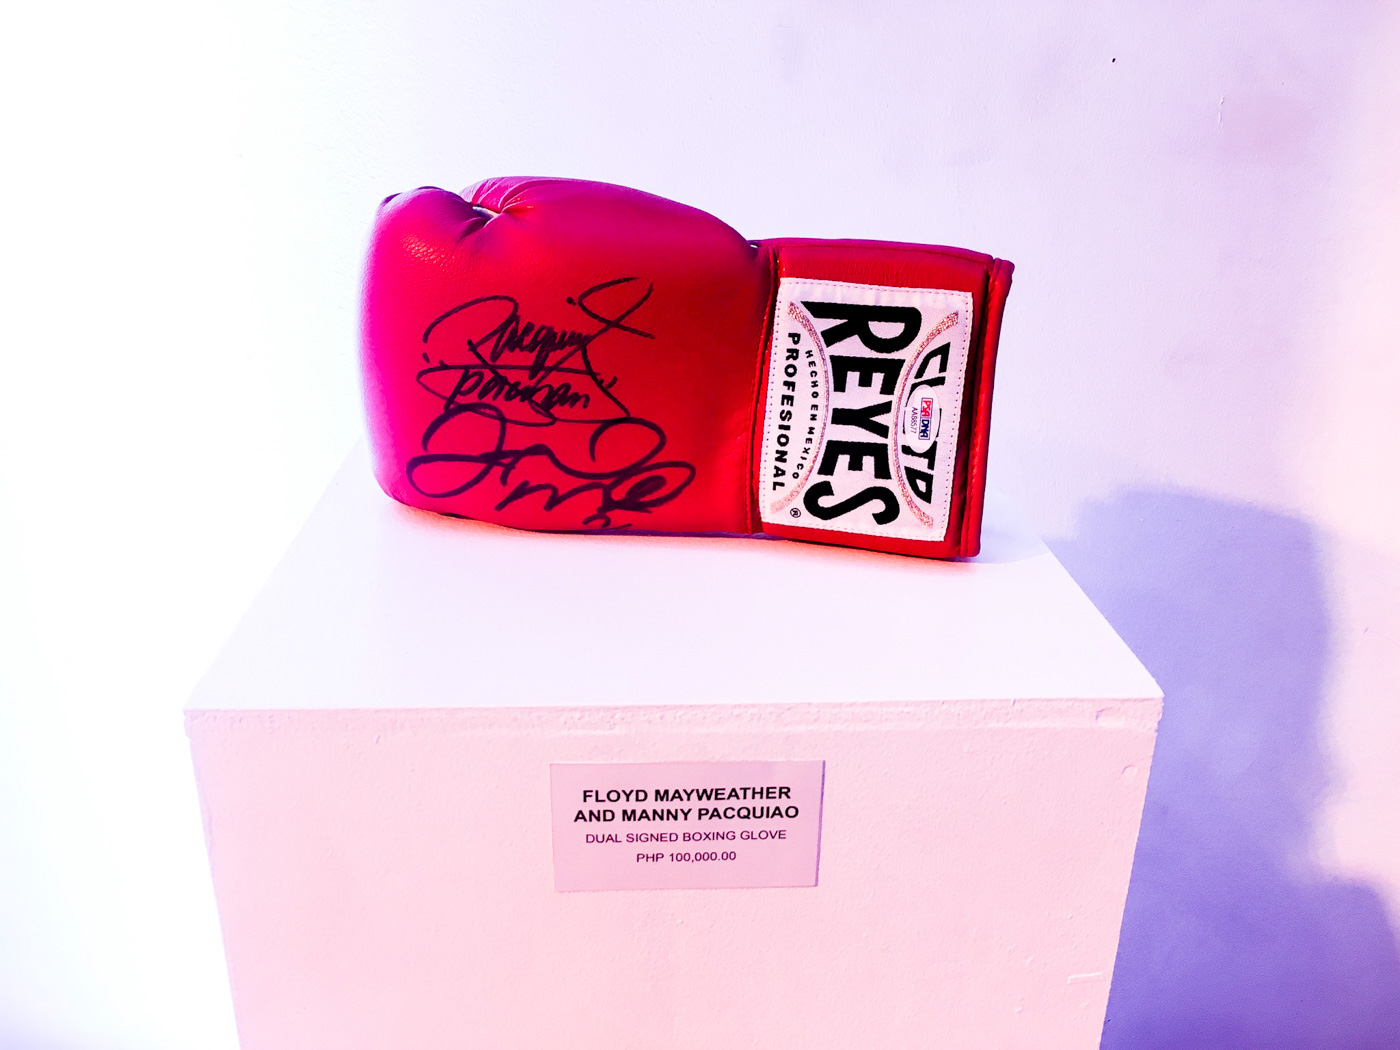 FIGHT OF THE CENTURY. The Cleto Reyes glove was signed by Floyd Mayweather and Manny Pacquiao themselves. Photo by Beatrice Go/Rappler